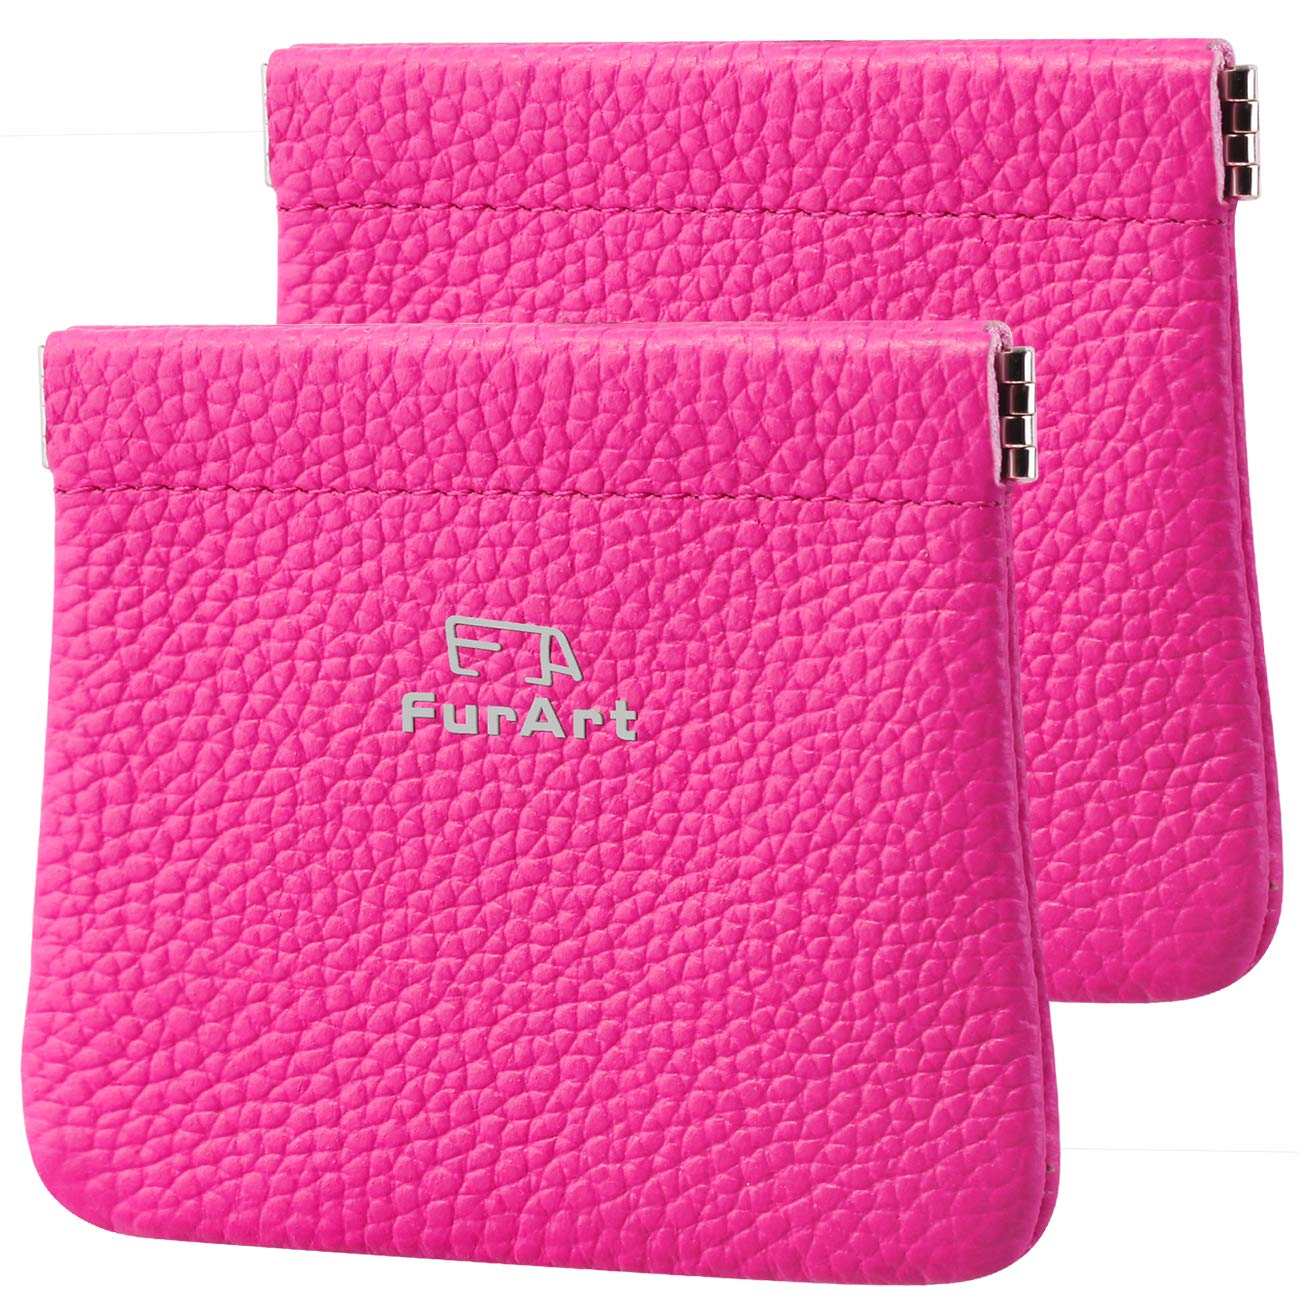 2 PACK Genuine Leather Squeeze Coin Purses Pouches for Women/&Men